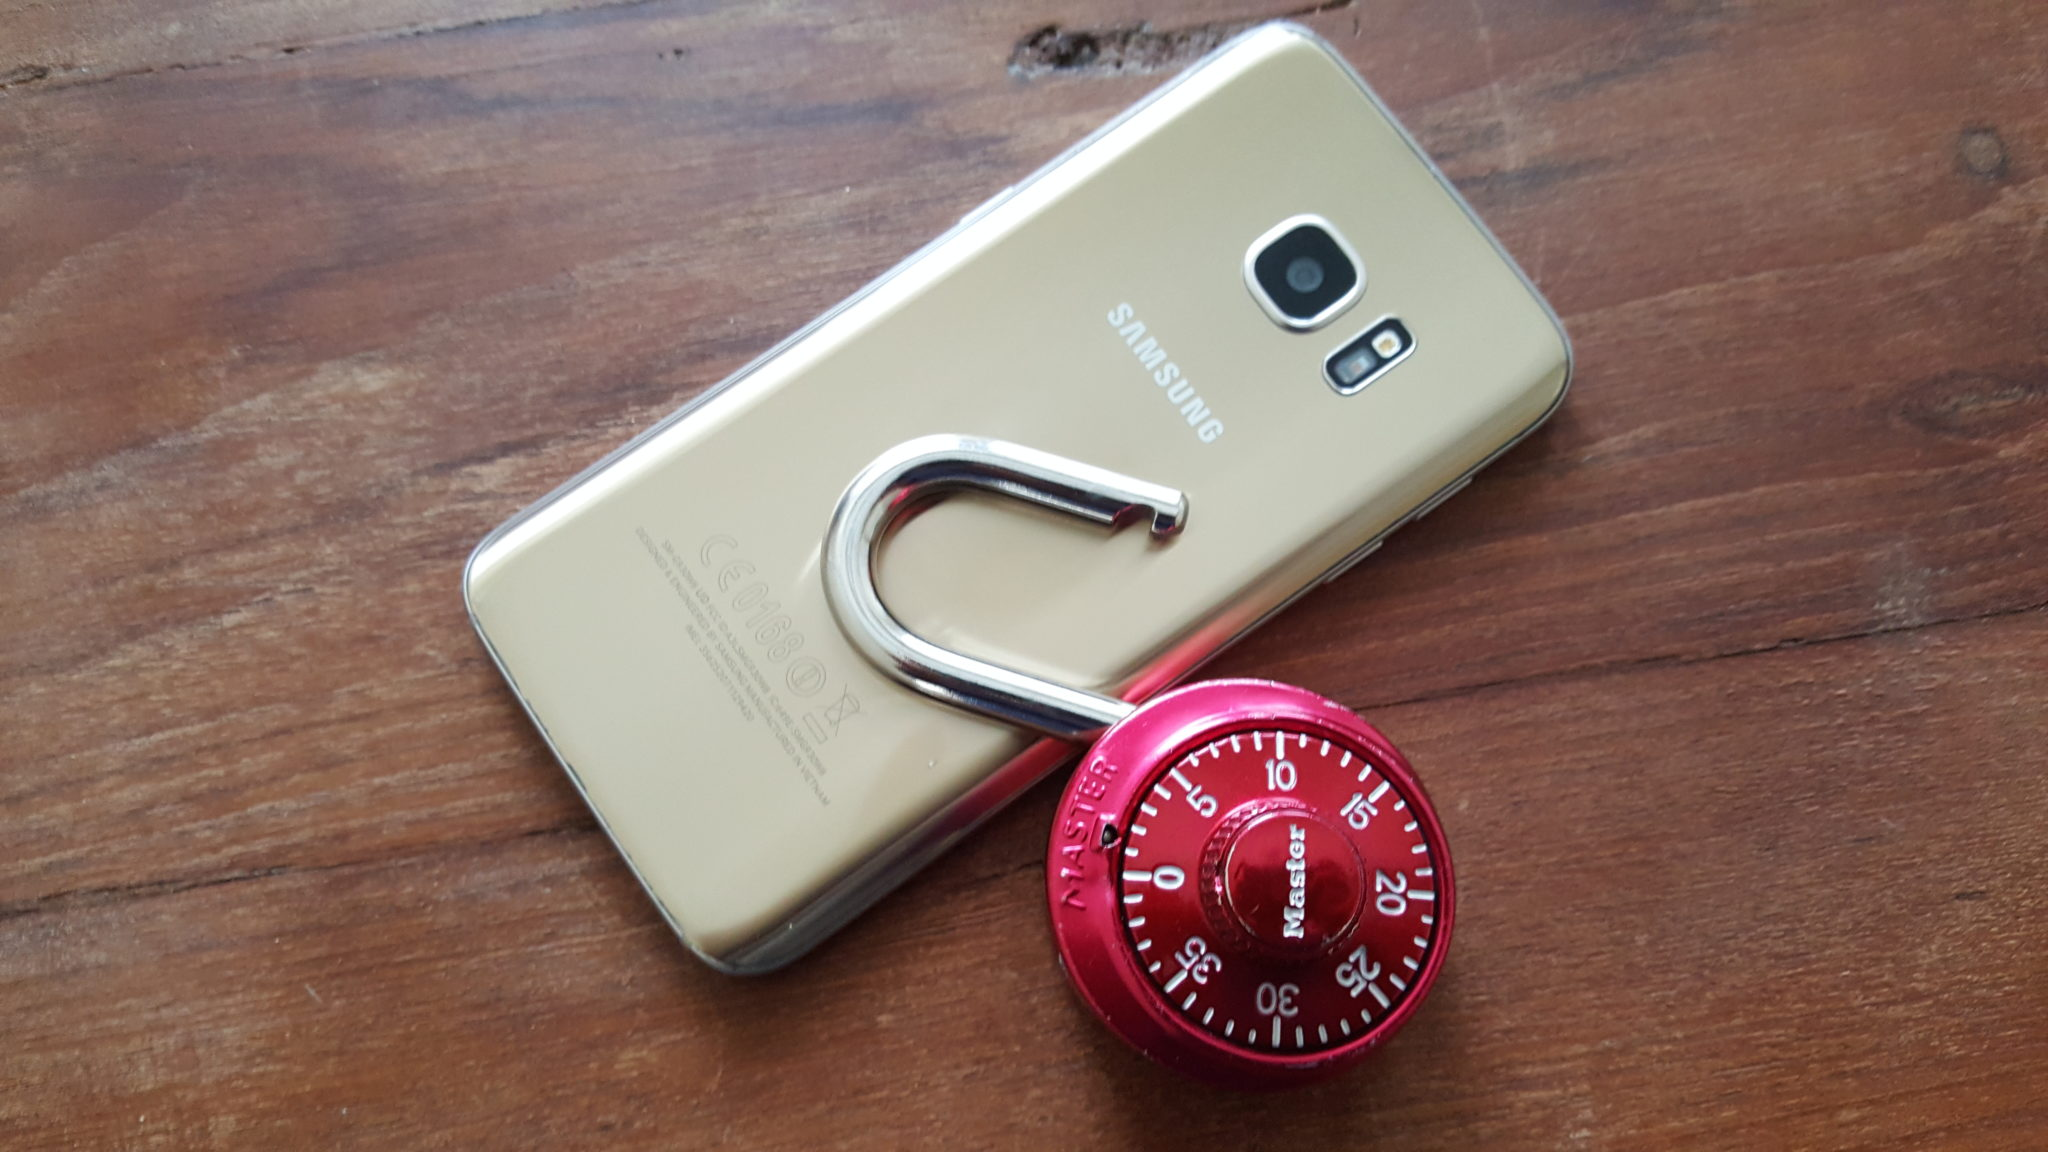 Samsung with unlocked padlock